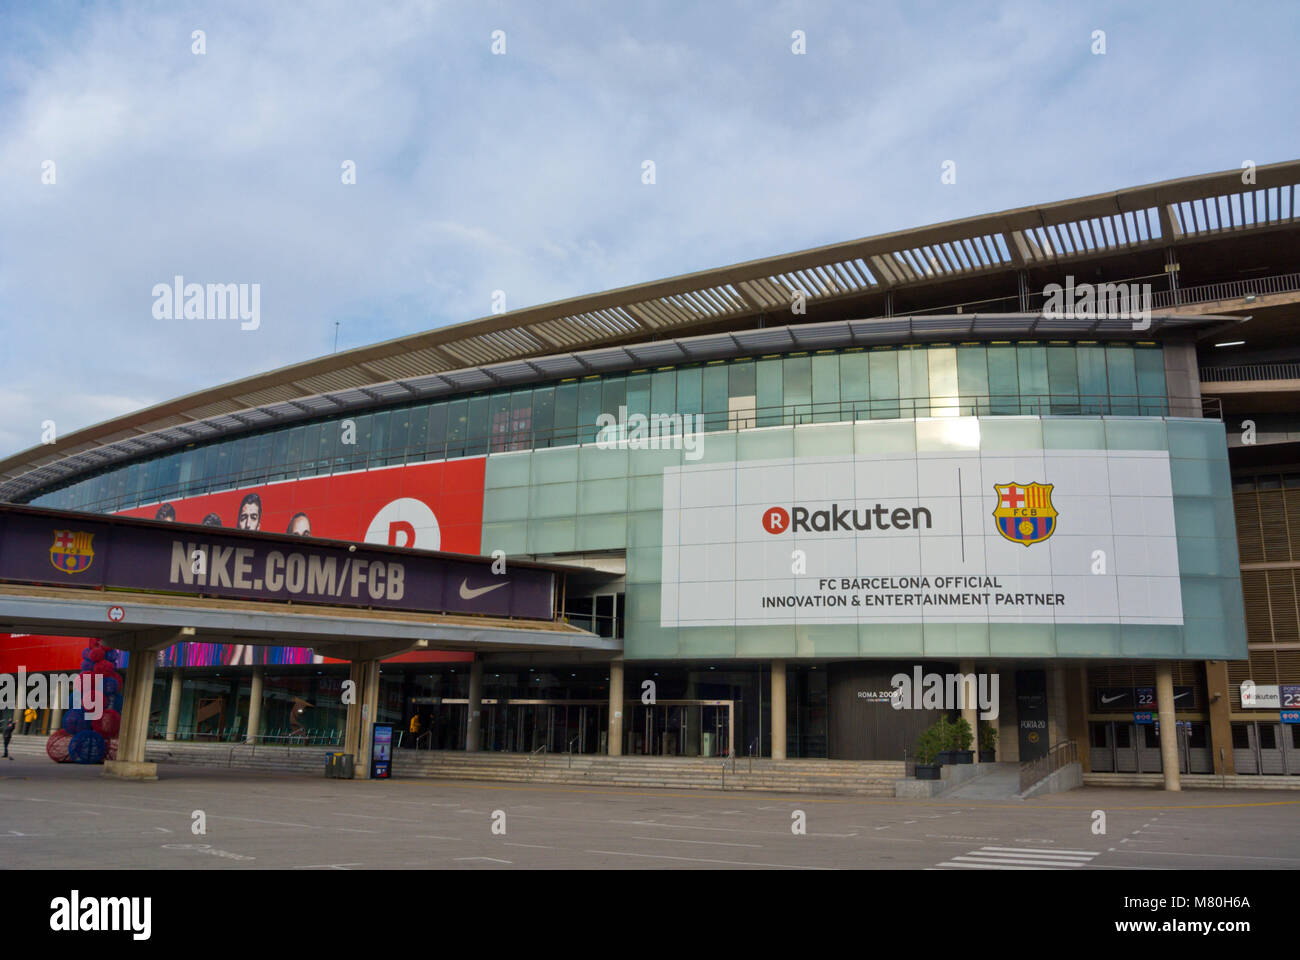 FC Barcelona football stadium, Camp Nou, Barcelona, Catalonia, Spain - Stock Image